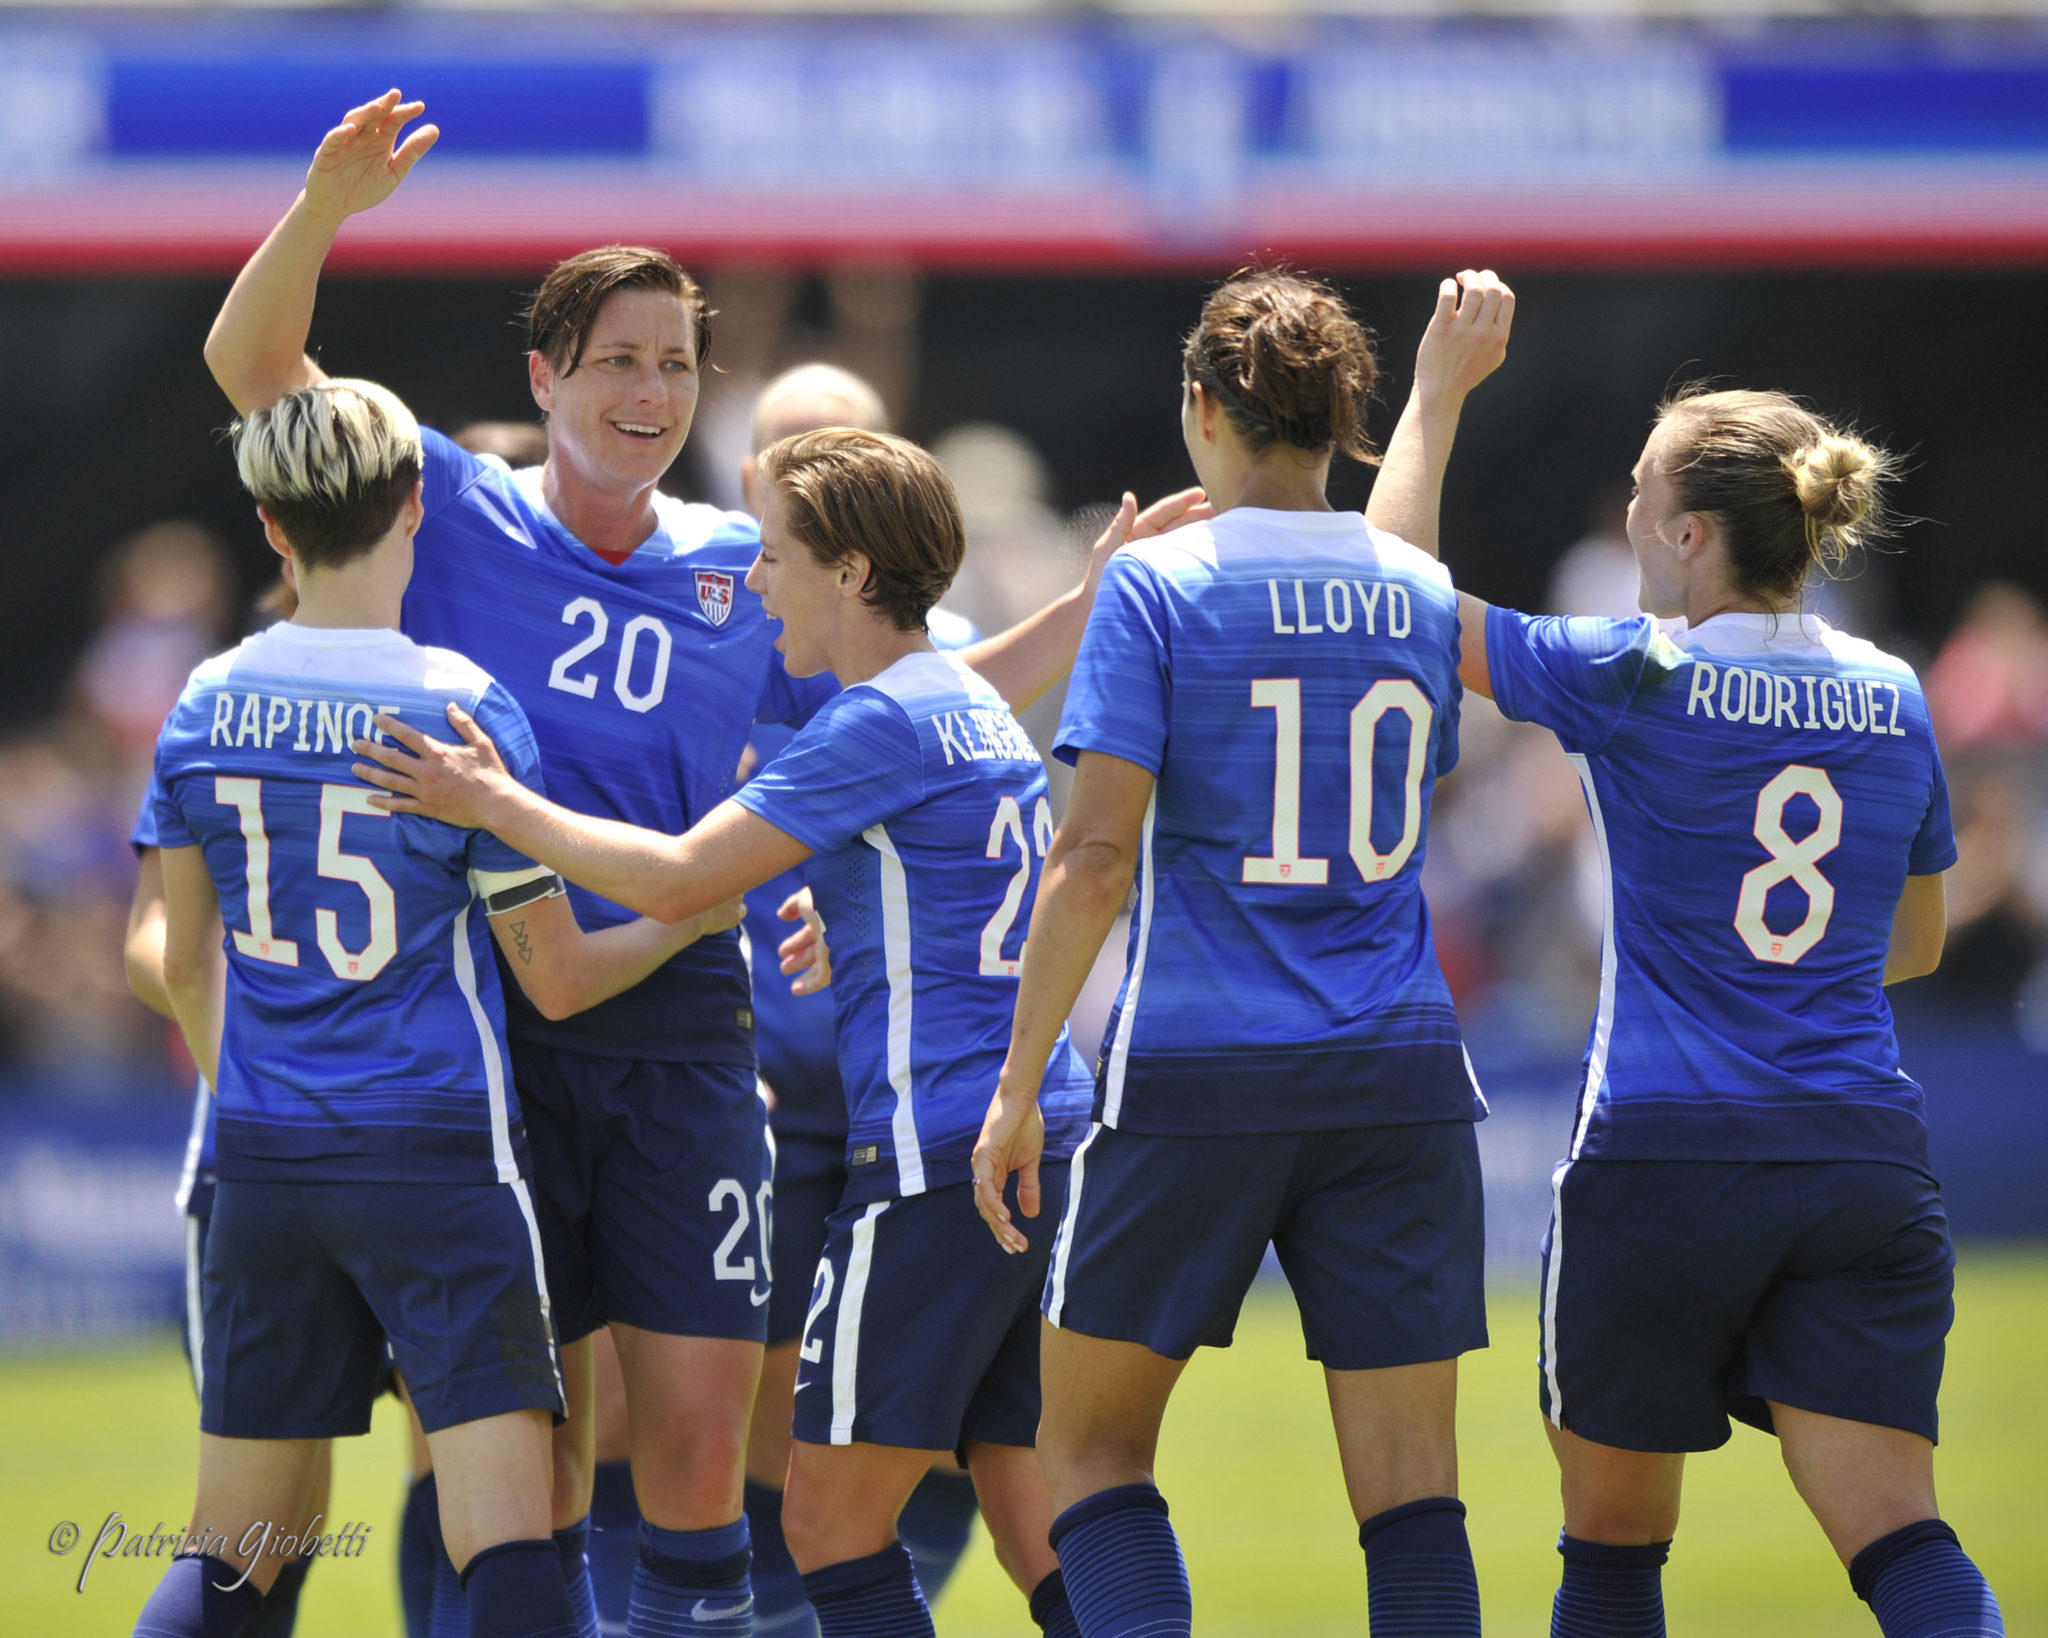 The U.S. women have had plenty of distractions ahead of the World Cup. (Photo Copyright Patricia Giobetti for The Equalizer)